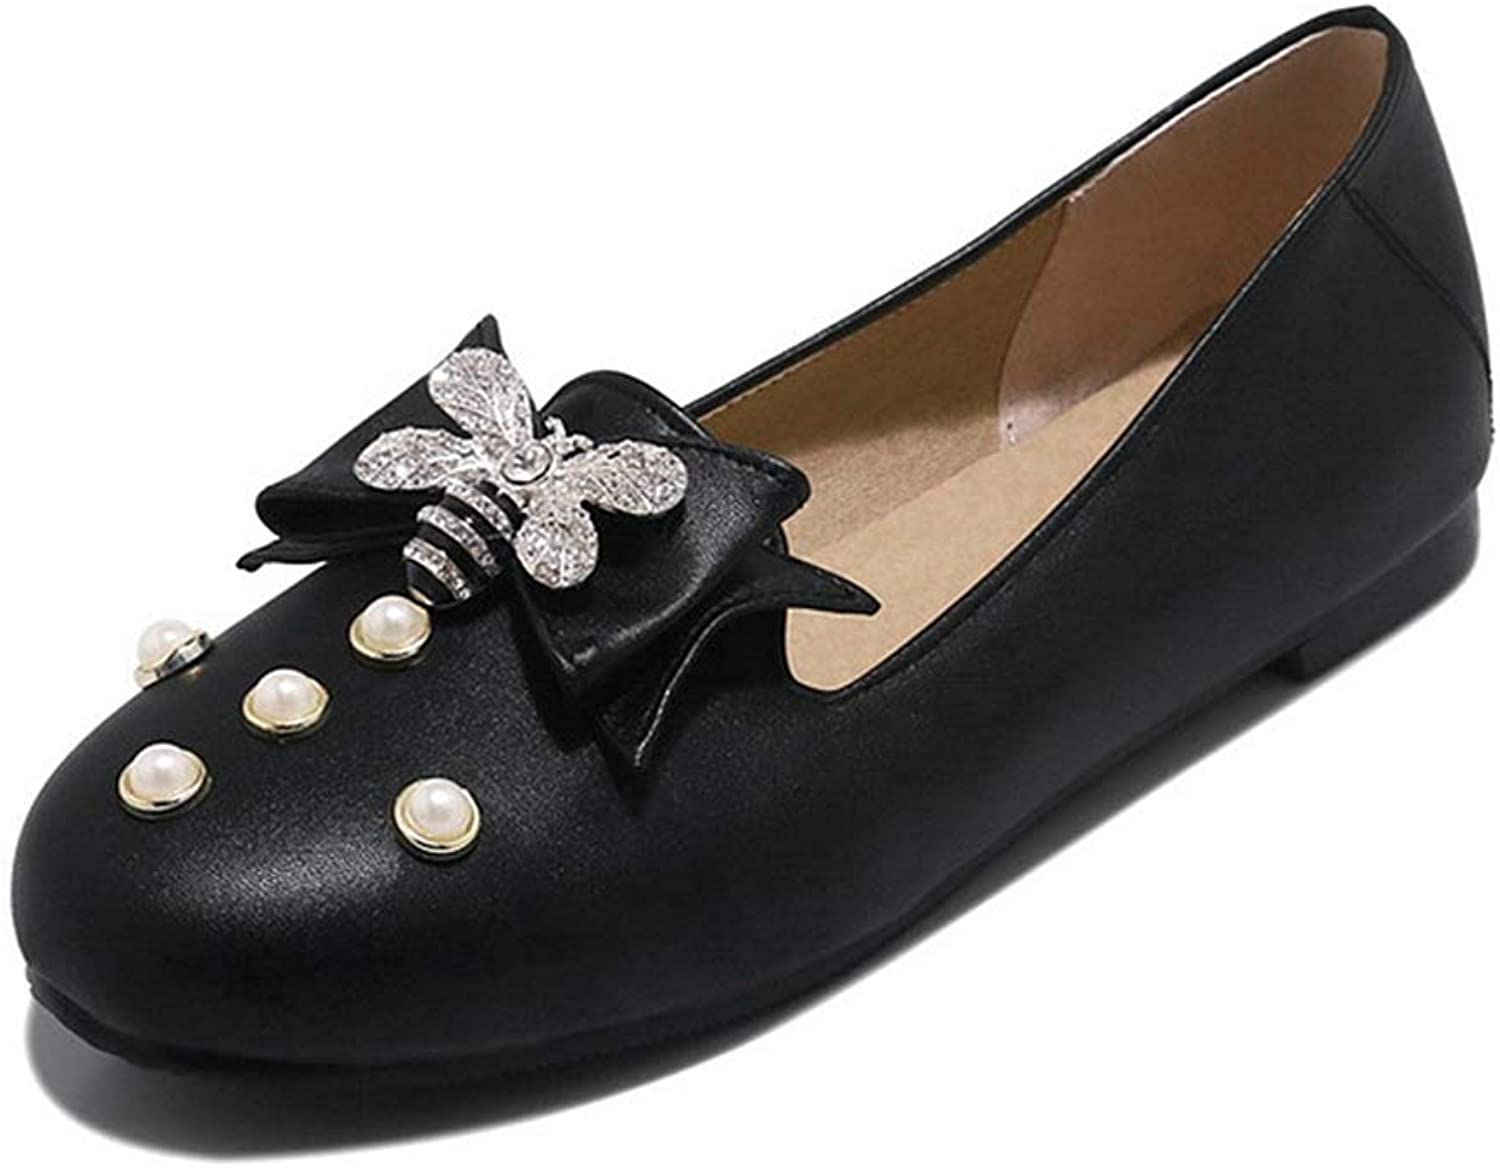 GIY Women's Classic Pointed Toe Ballet Flats Bee Bow Casual Comfort Slip on Dress Walking shoes